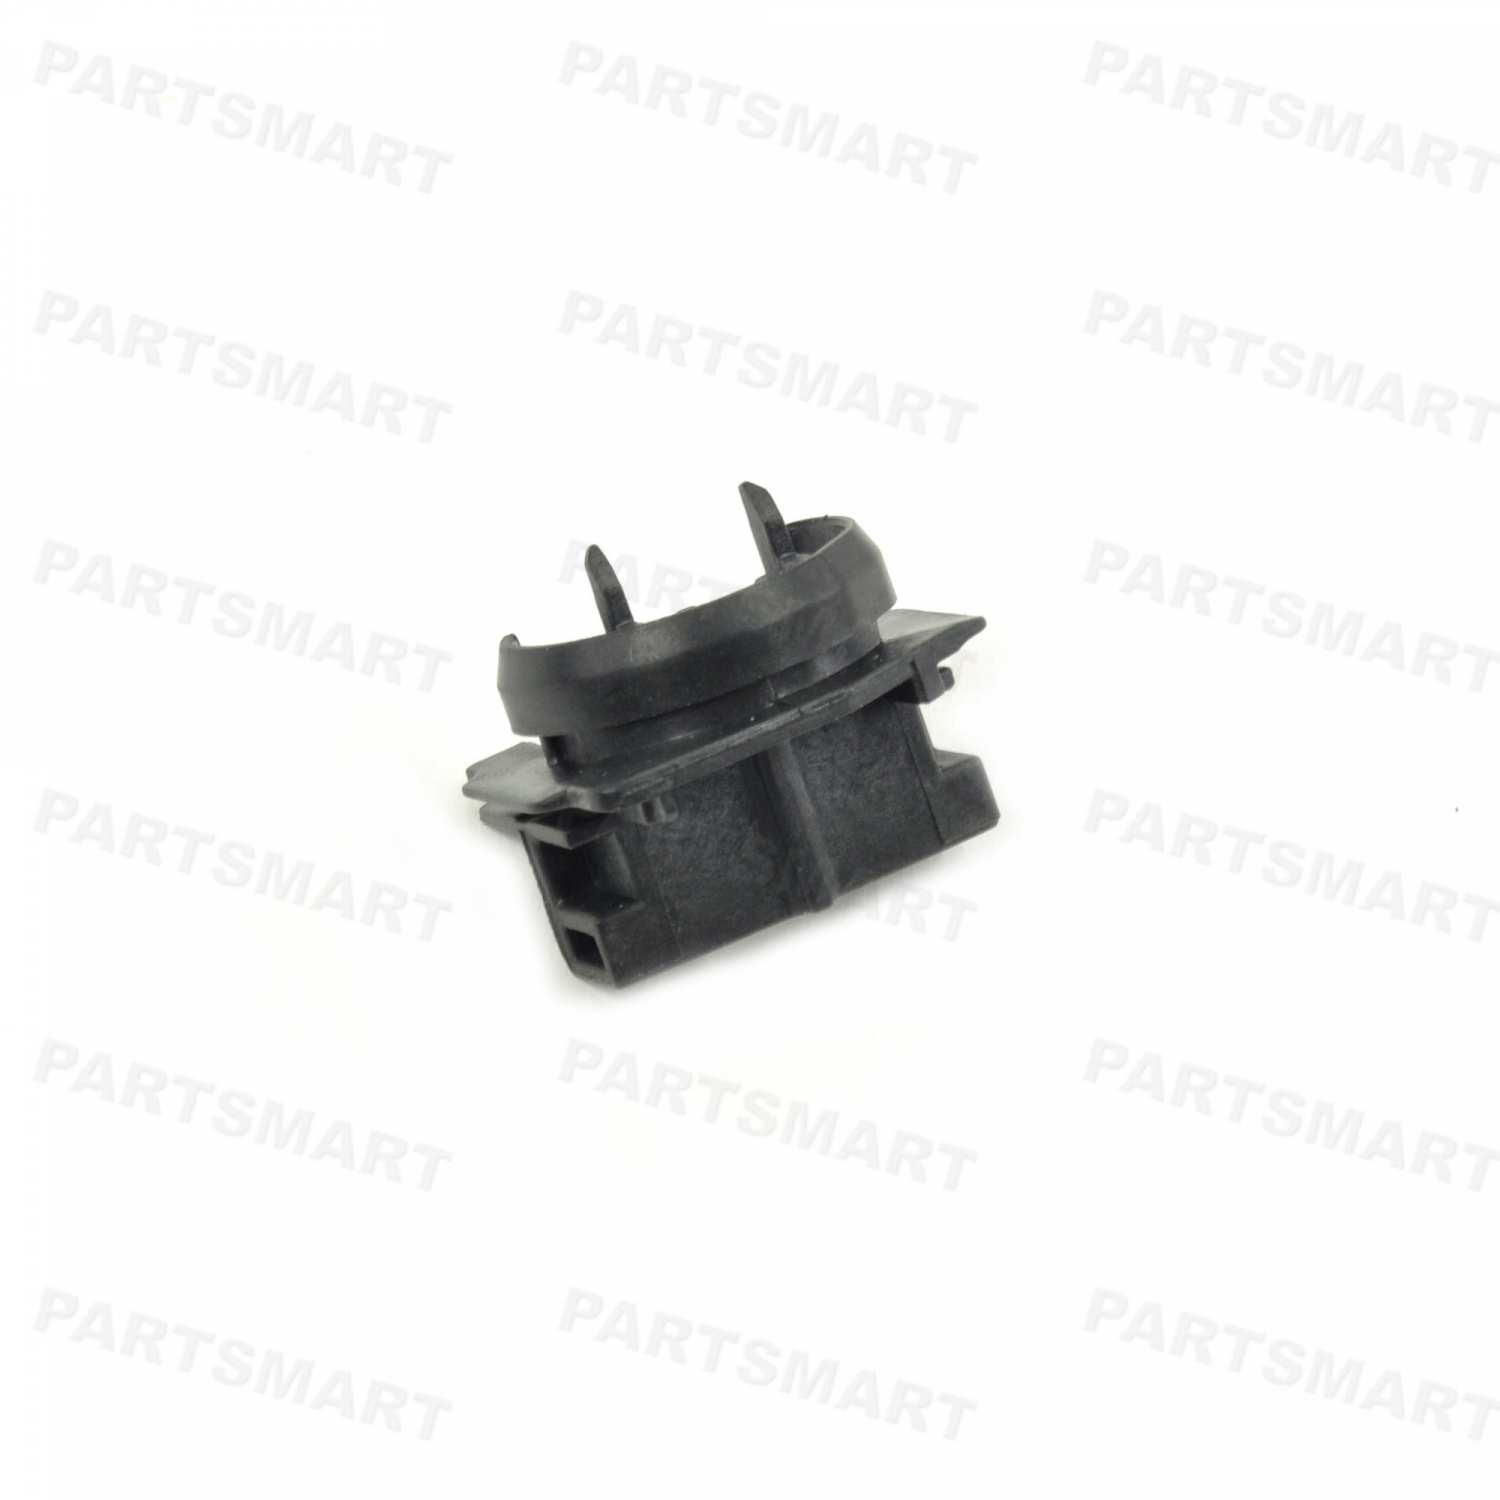 RC2-4334-000 Flange, Right for HP Color LaserJet CM3530, Color LaserJet CP3525, Color LaserJet Enterprise M551, Color LaserJet Enterprise M575